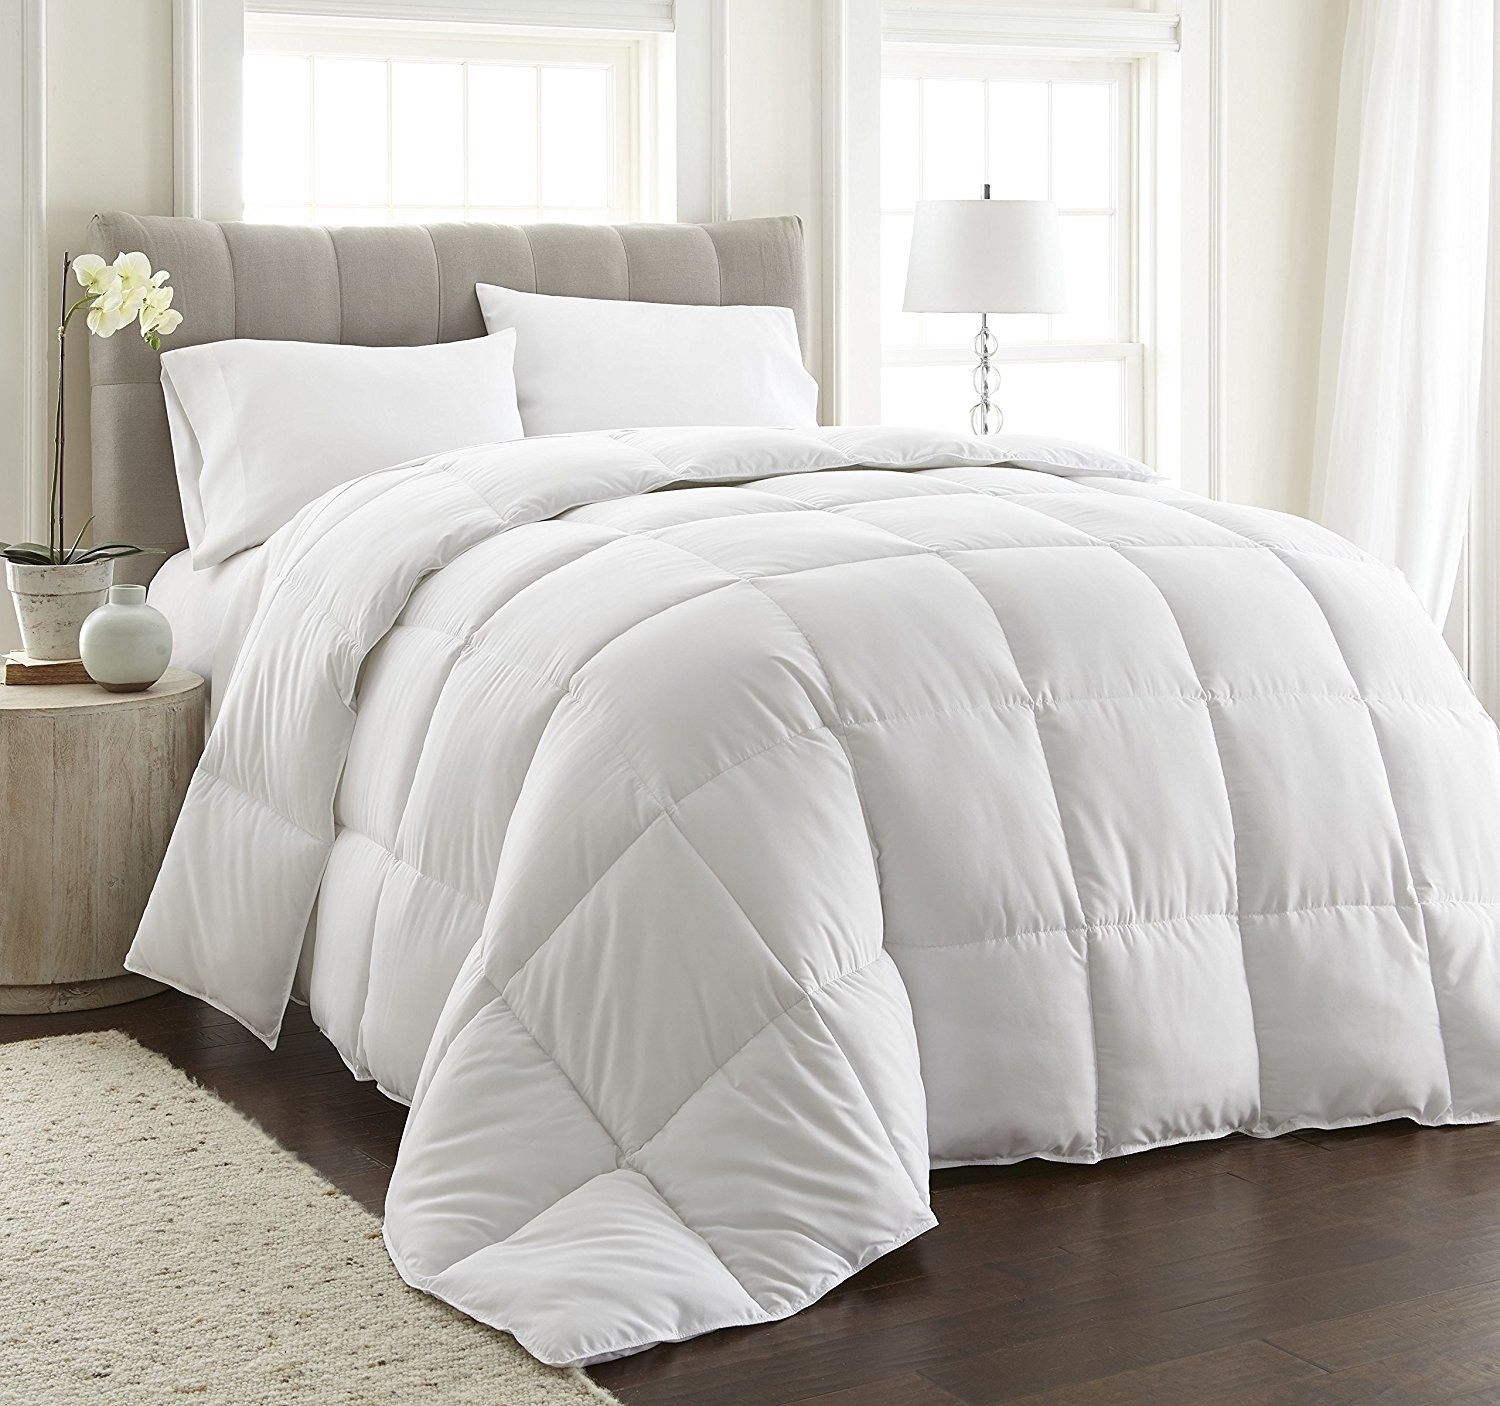 This 34 Comforter At Amazon Is Heaven For Your Bed Body And